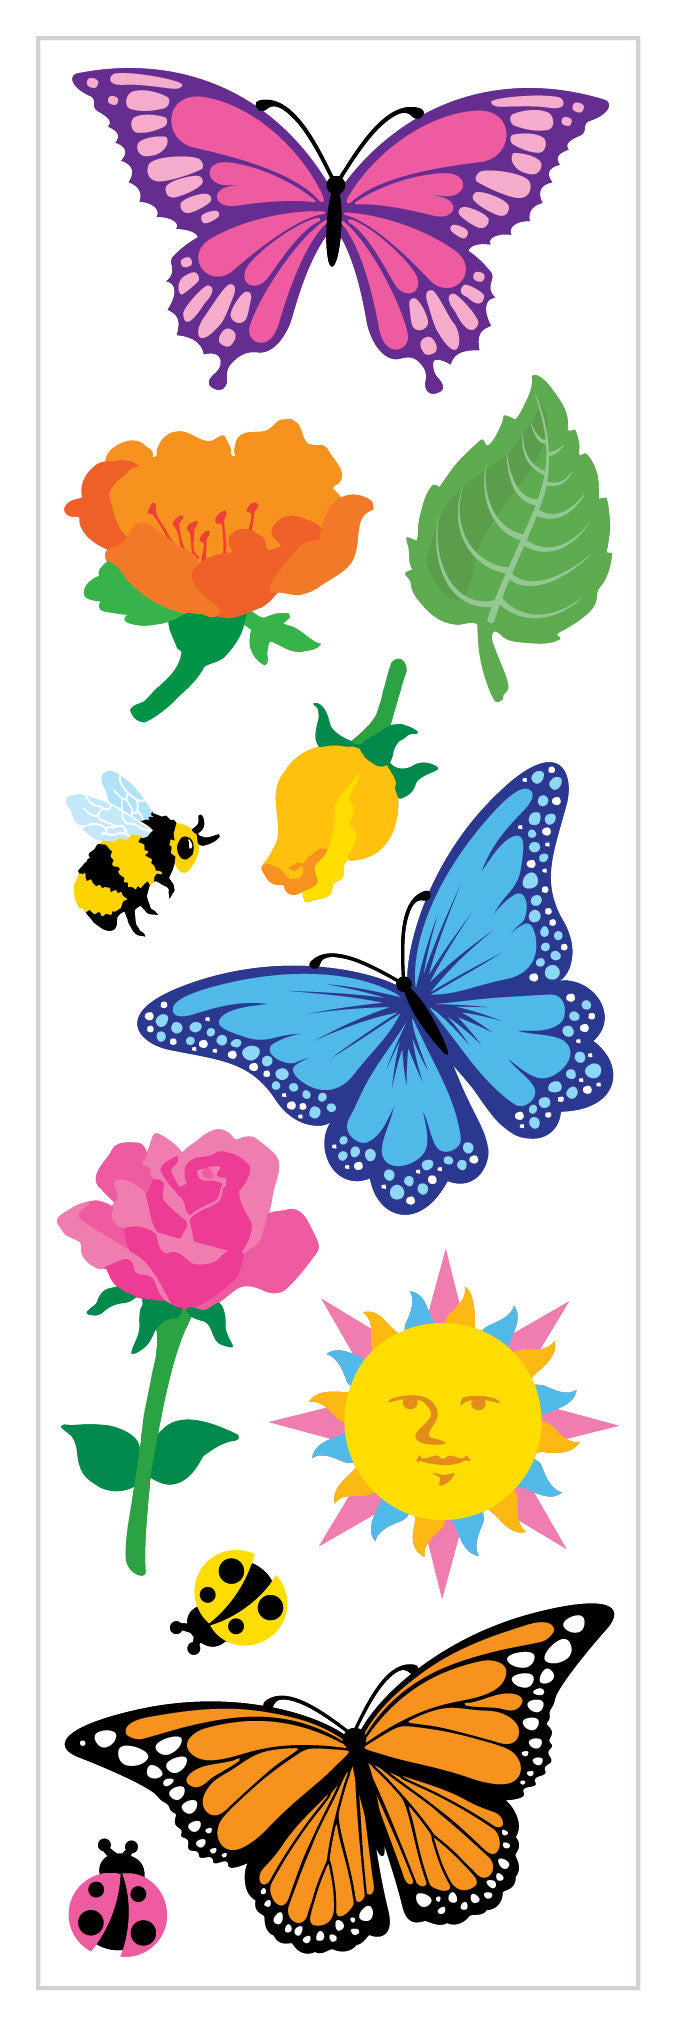 Butterflies and Flowers Stickers - Mrs. Grossman's